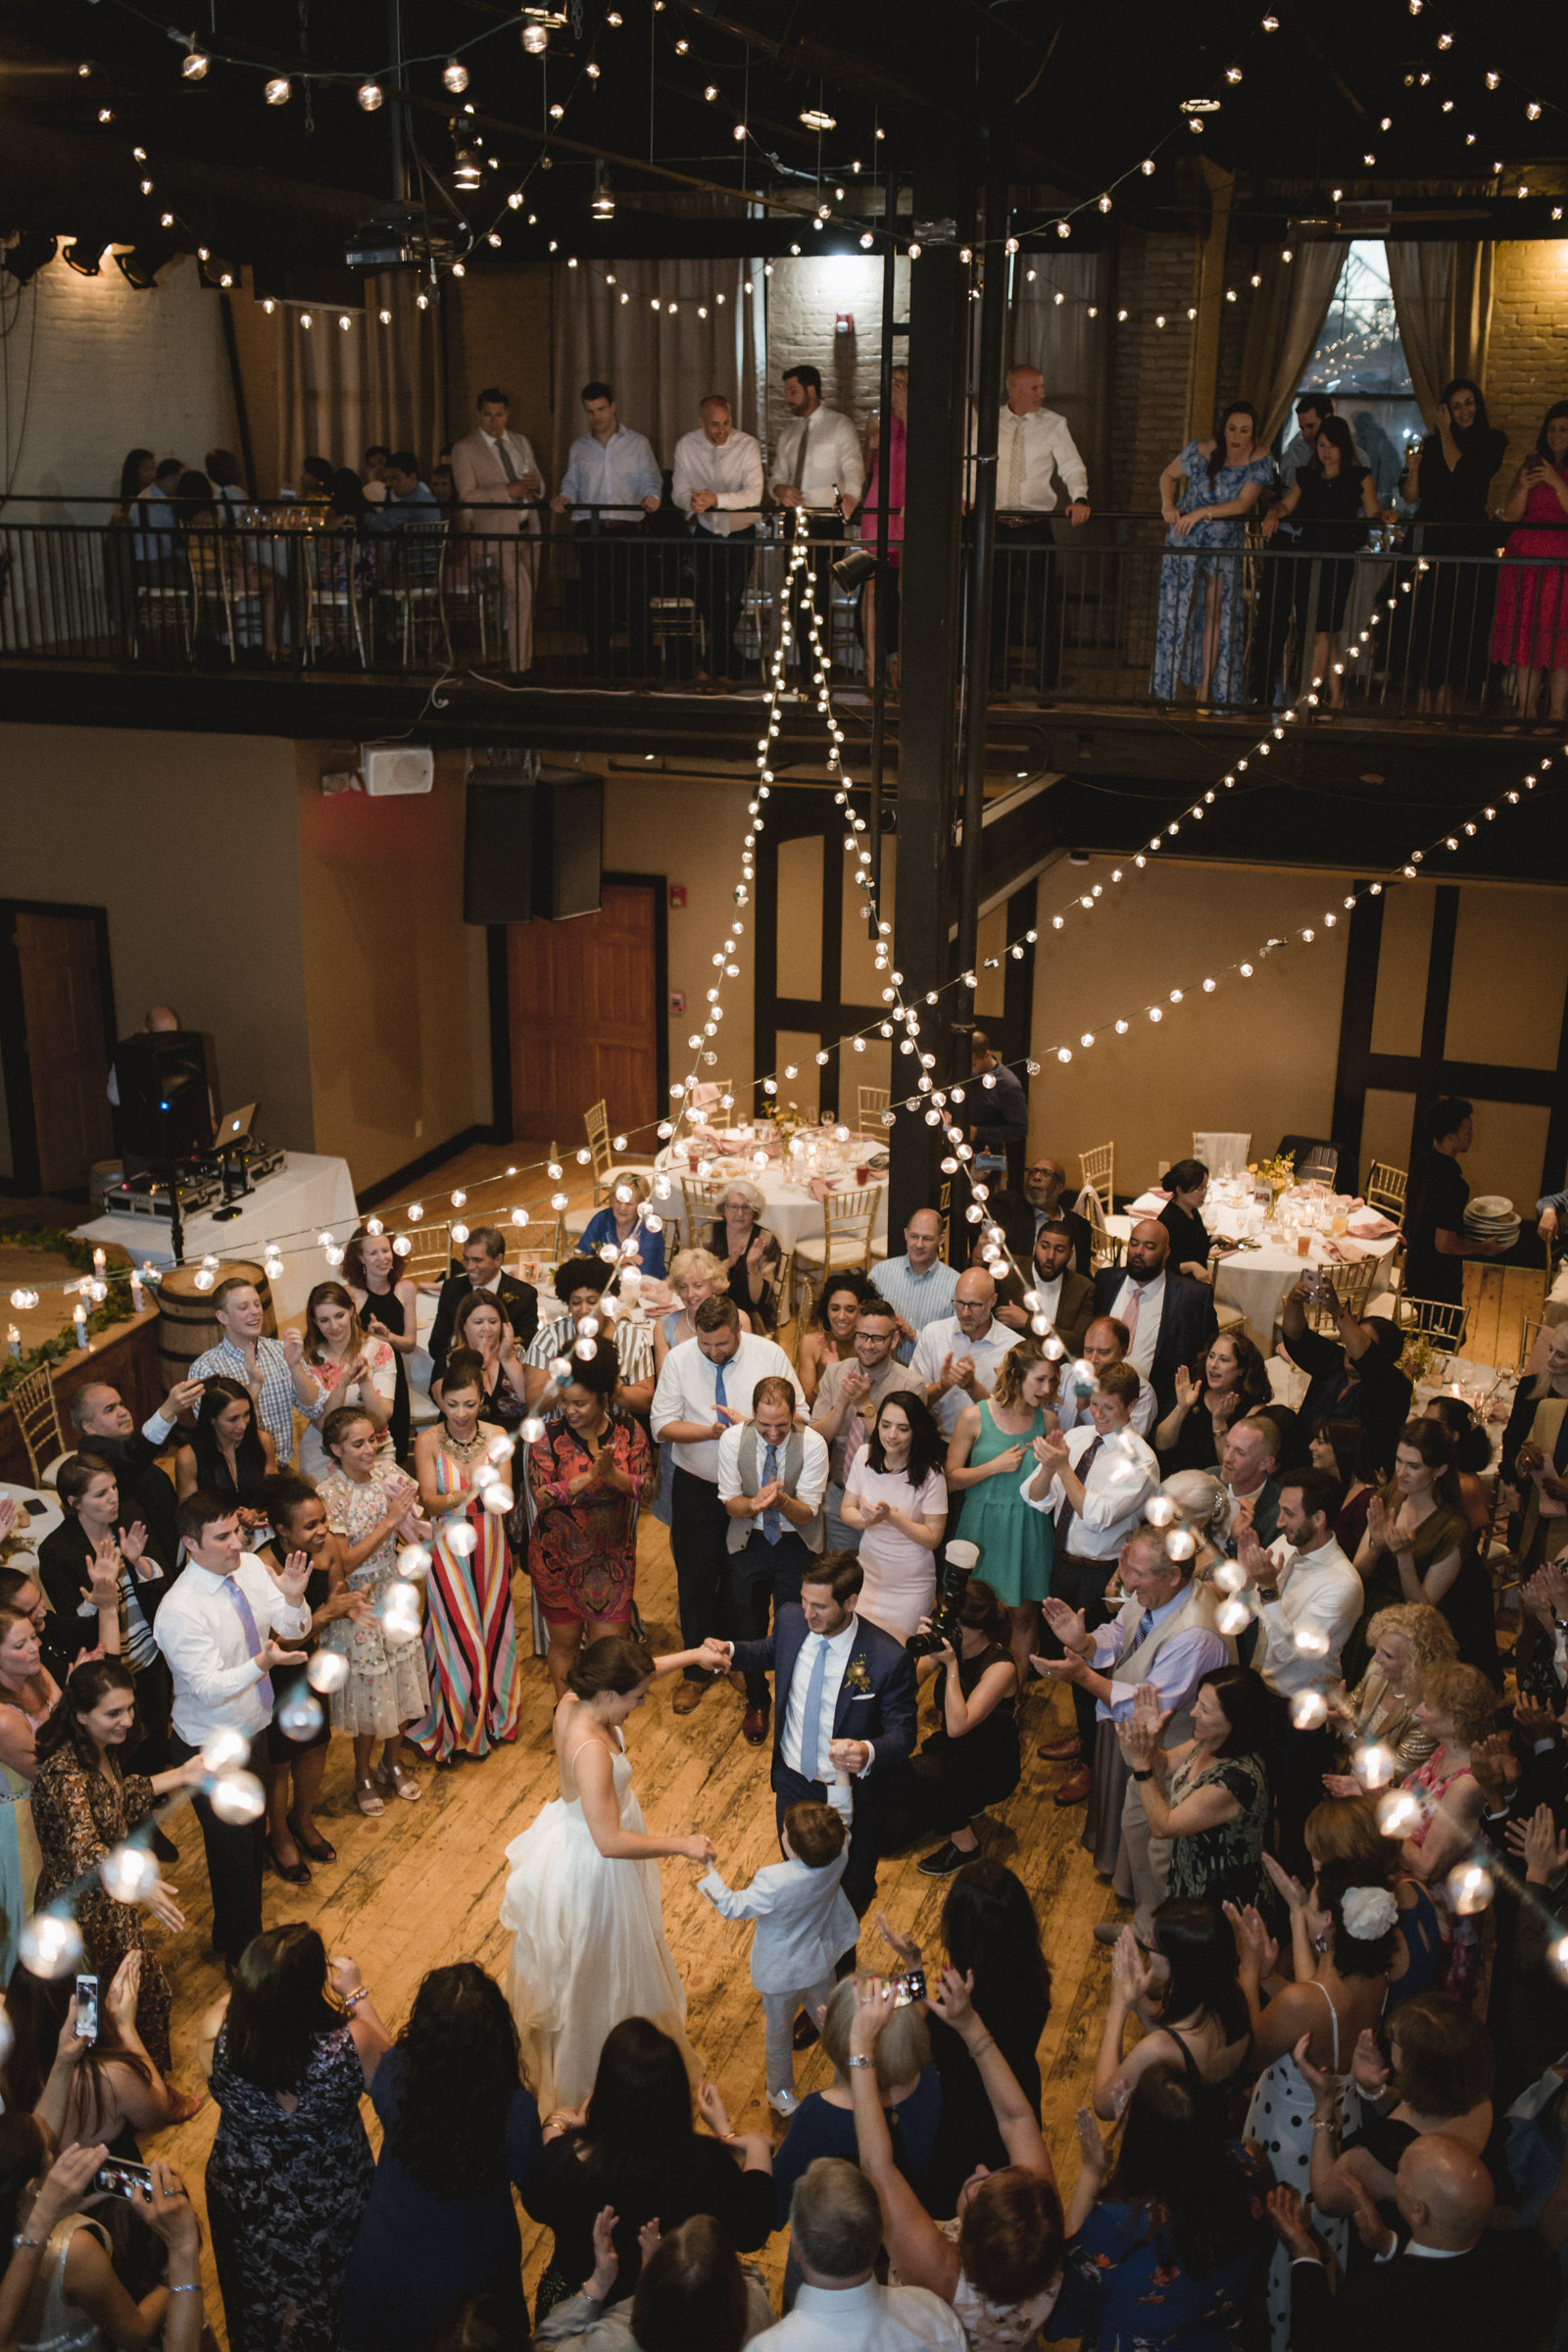 Amy Sims Photography | bride and groom dance the Hora with ring bearer surrounded by guests | New York Wedding Photographer | Upstate New York Wedding photographer